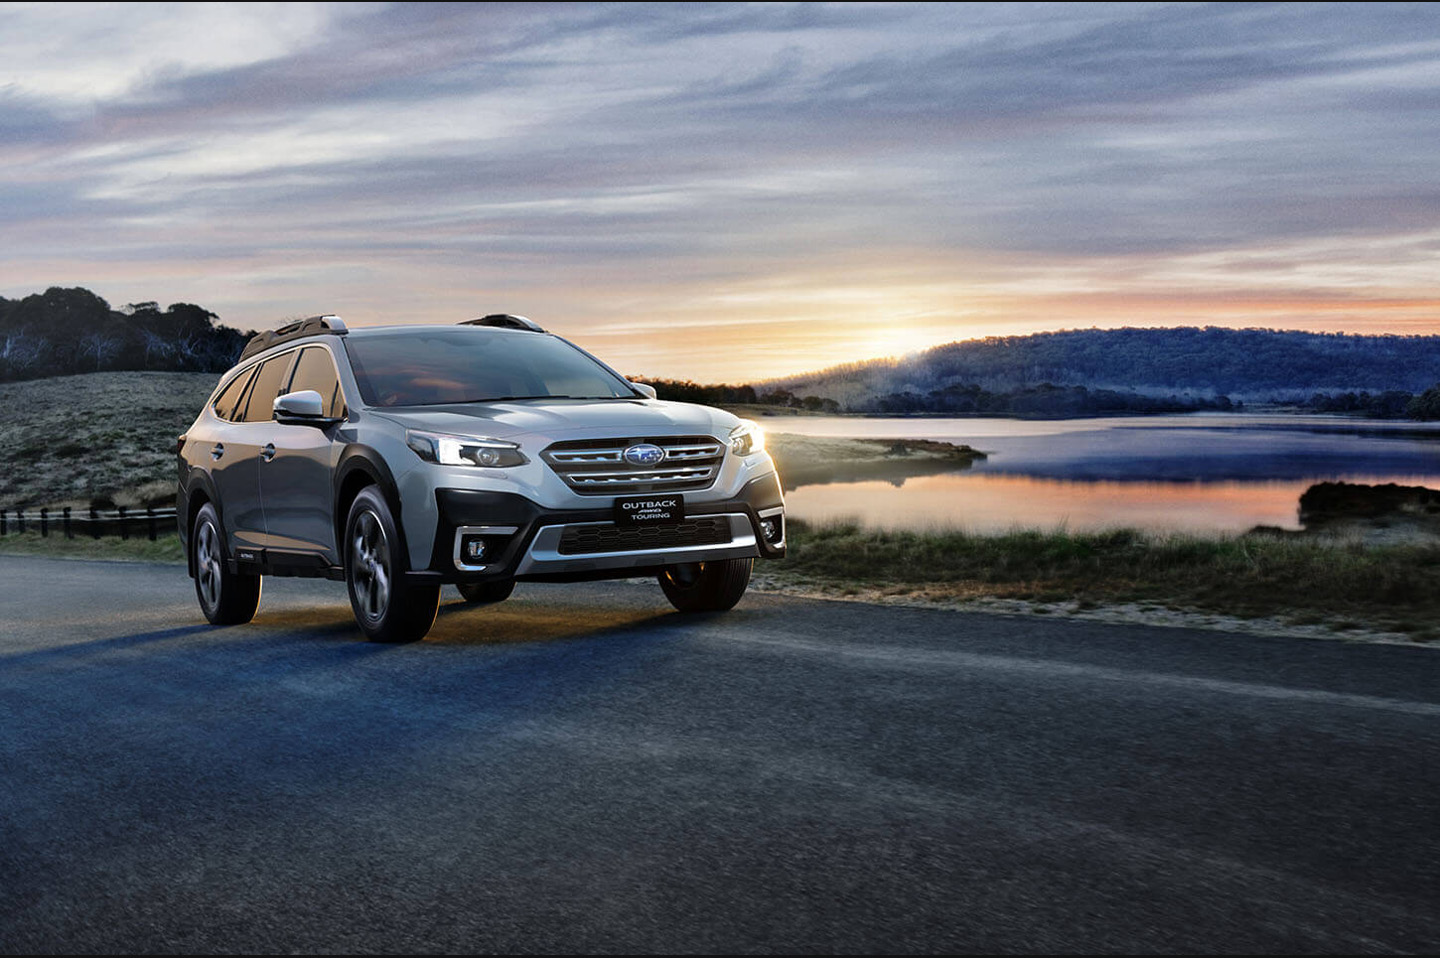 Subaru Outback AWD Touring shown